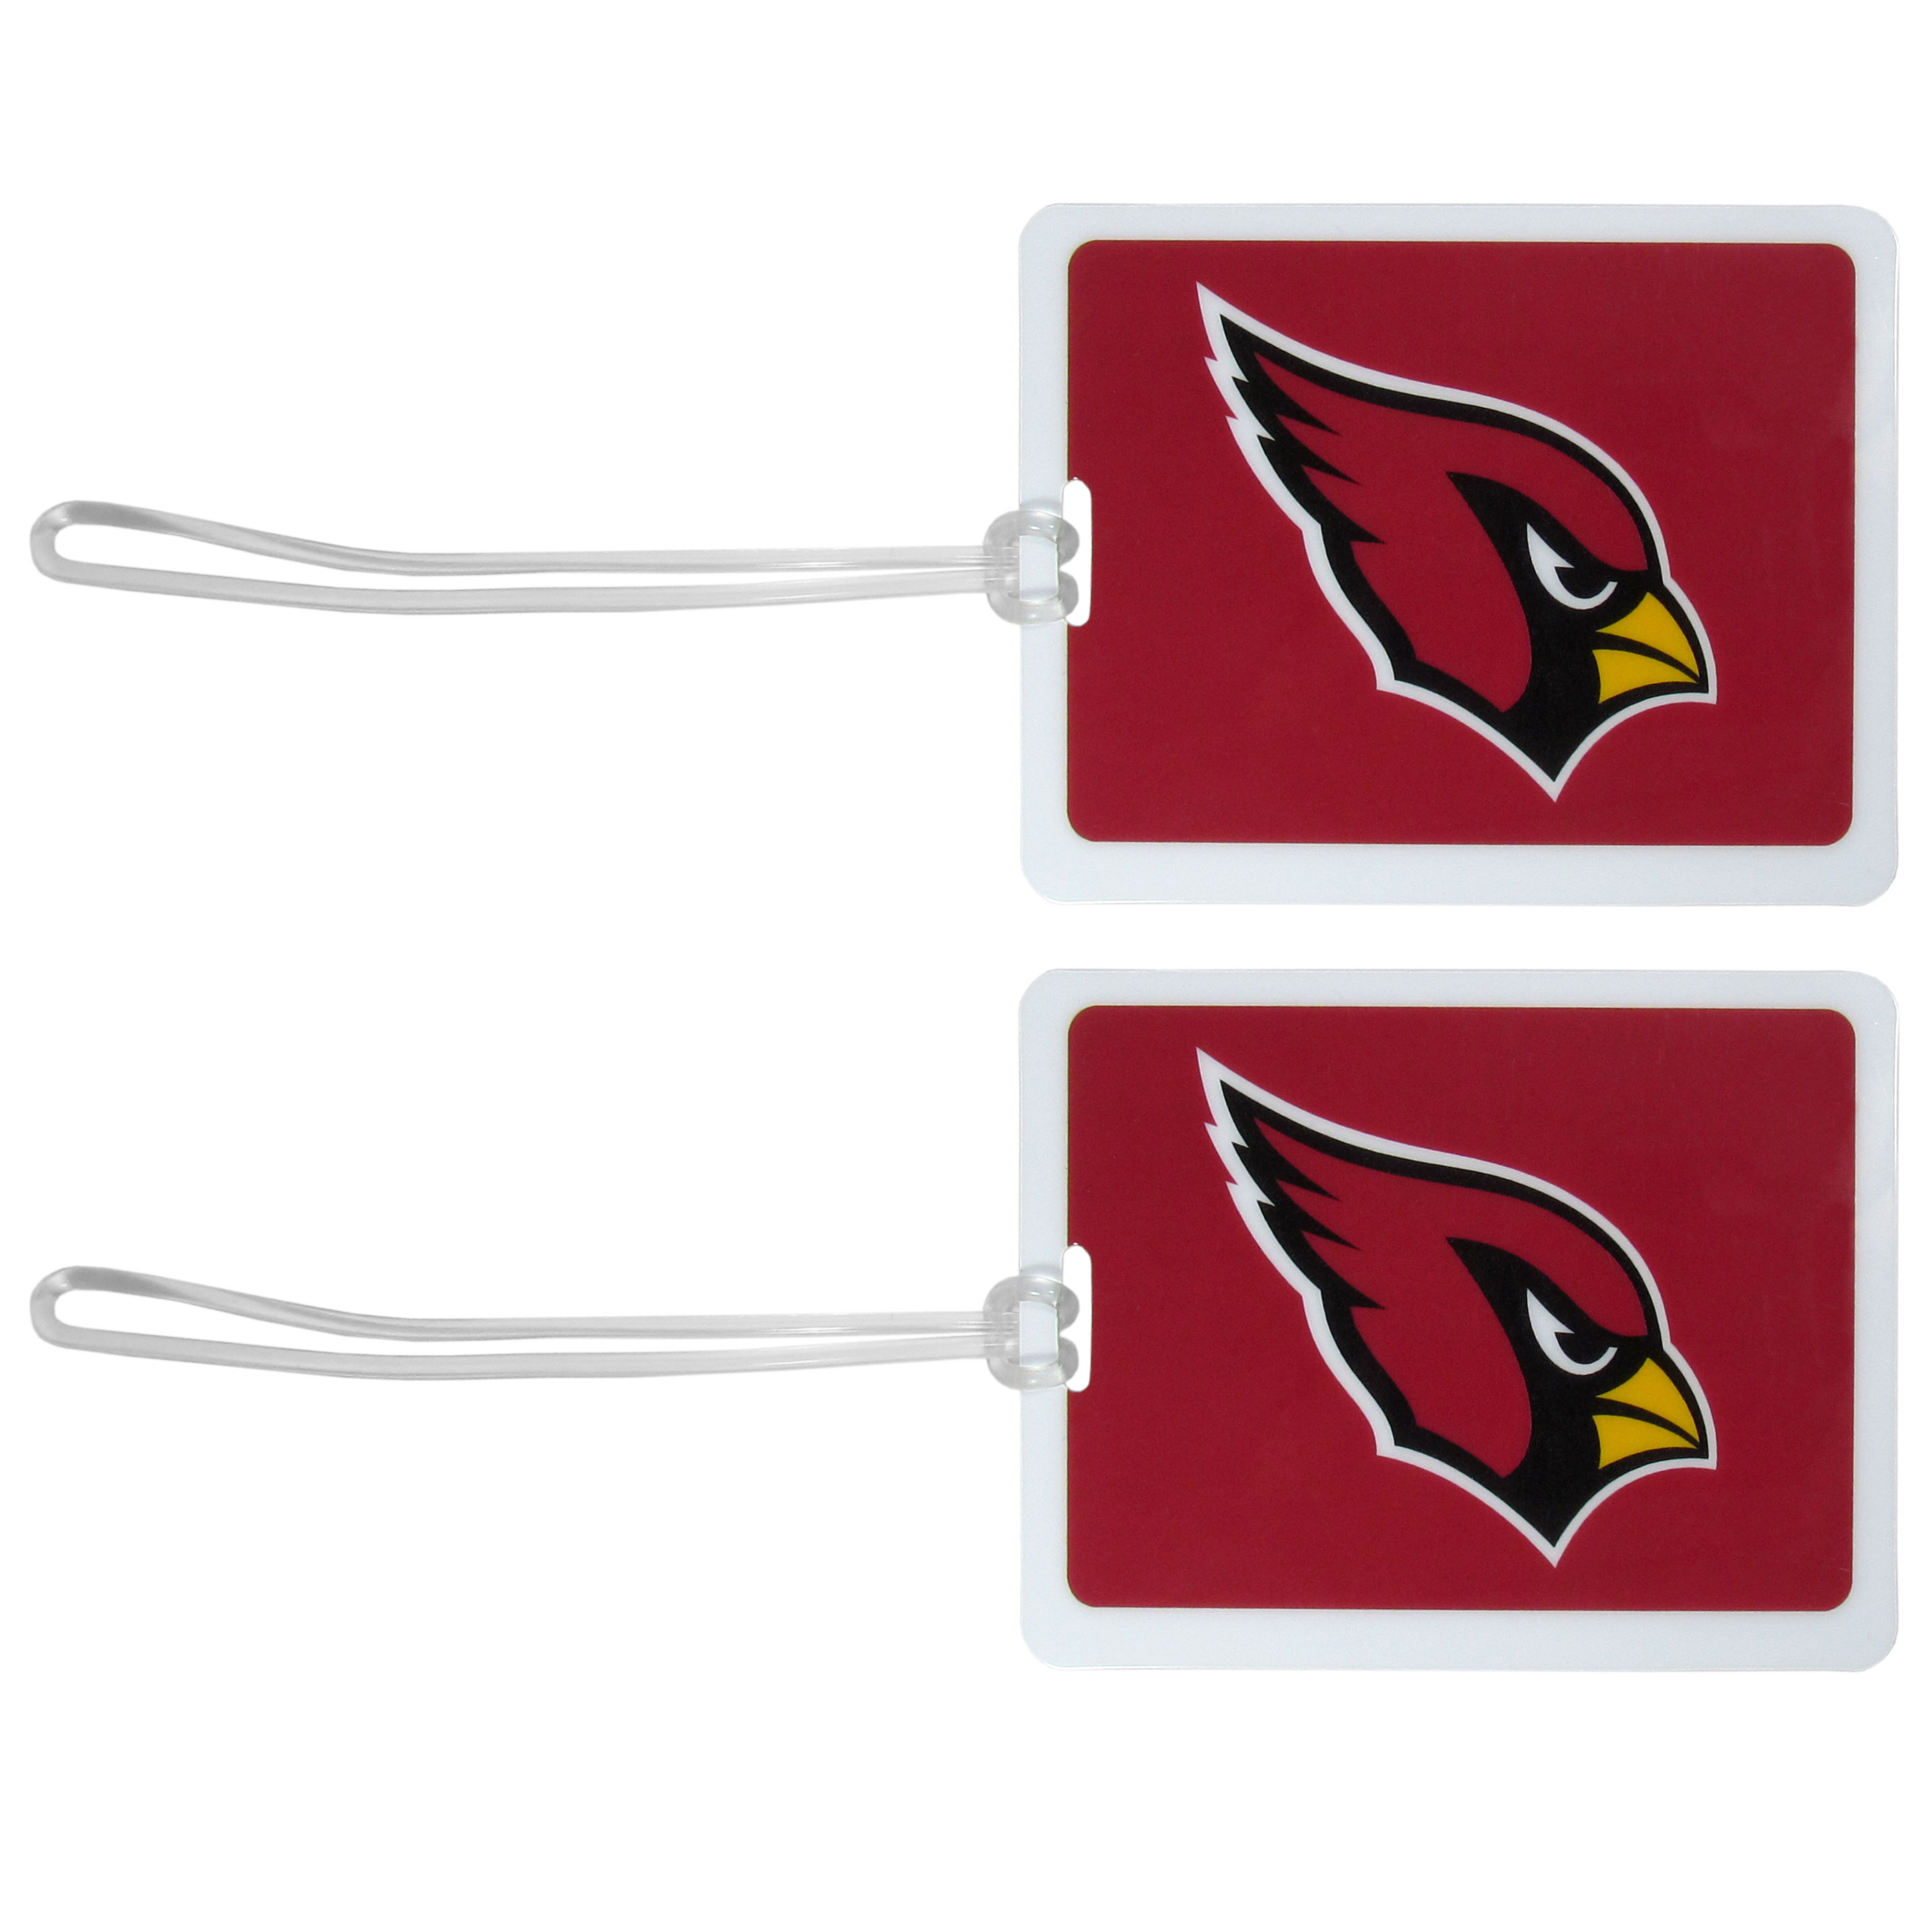 Arizona Cardinals Vinyl Luggage Tag, 2pk - Tired of trying to spot your suitcase or bag in a sea of luggage? Try our large and colorful Arizona Cardinals luggage tags. The tag is 4x3 inches and has a 5 inch cord to attach it easily to your bags, backpacks or luggage. The front of the tag features the team logo in a bright, team colored background and you can write you name, address and phone number on the back of the tag.